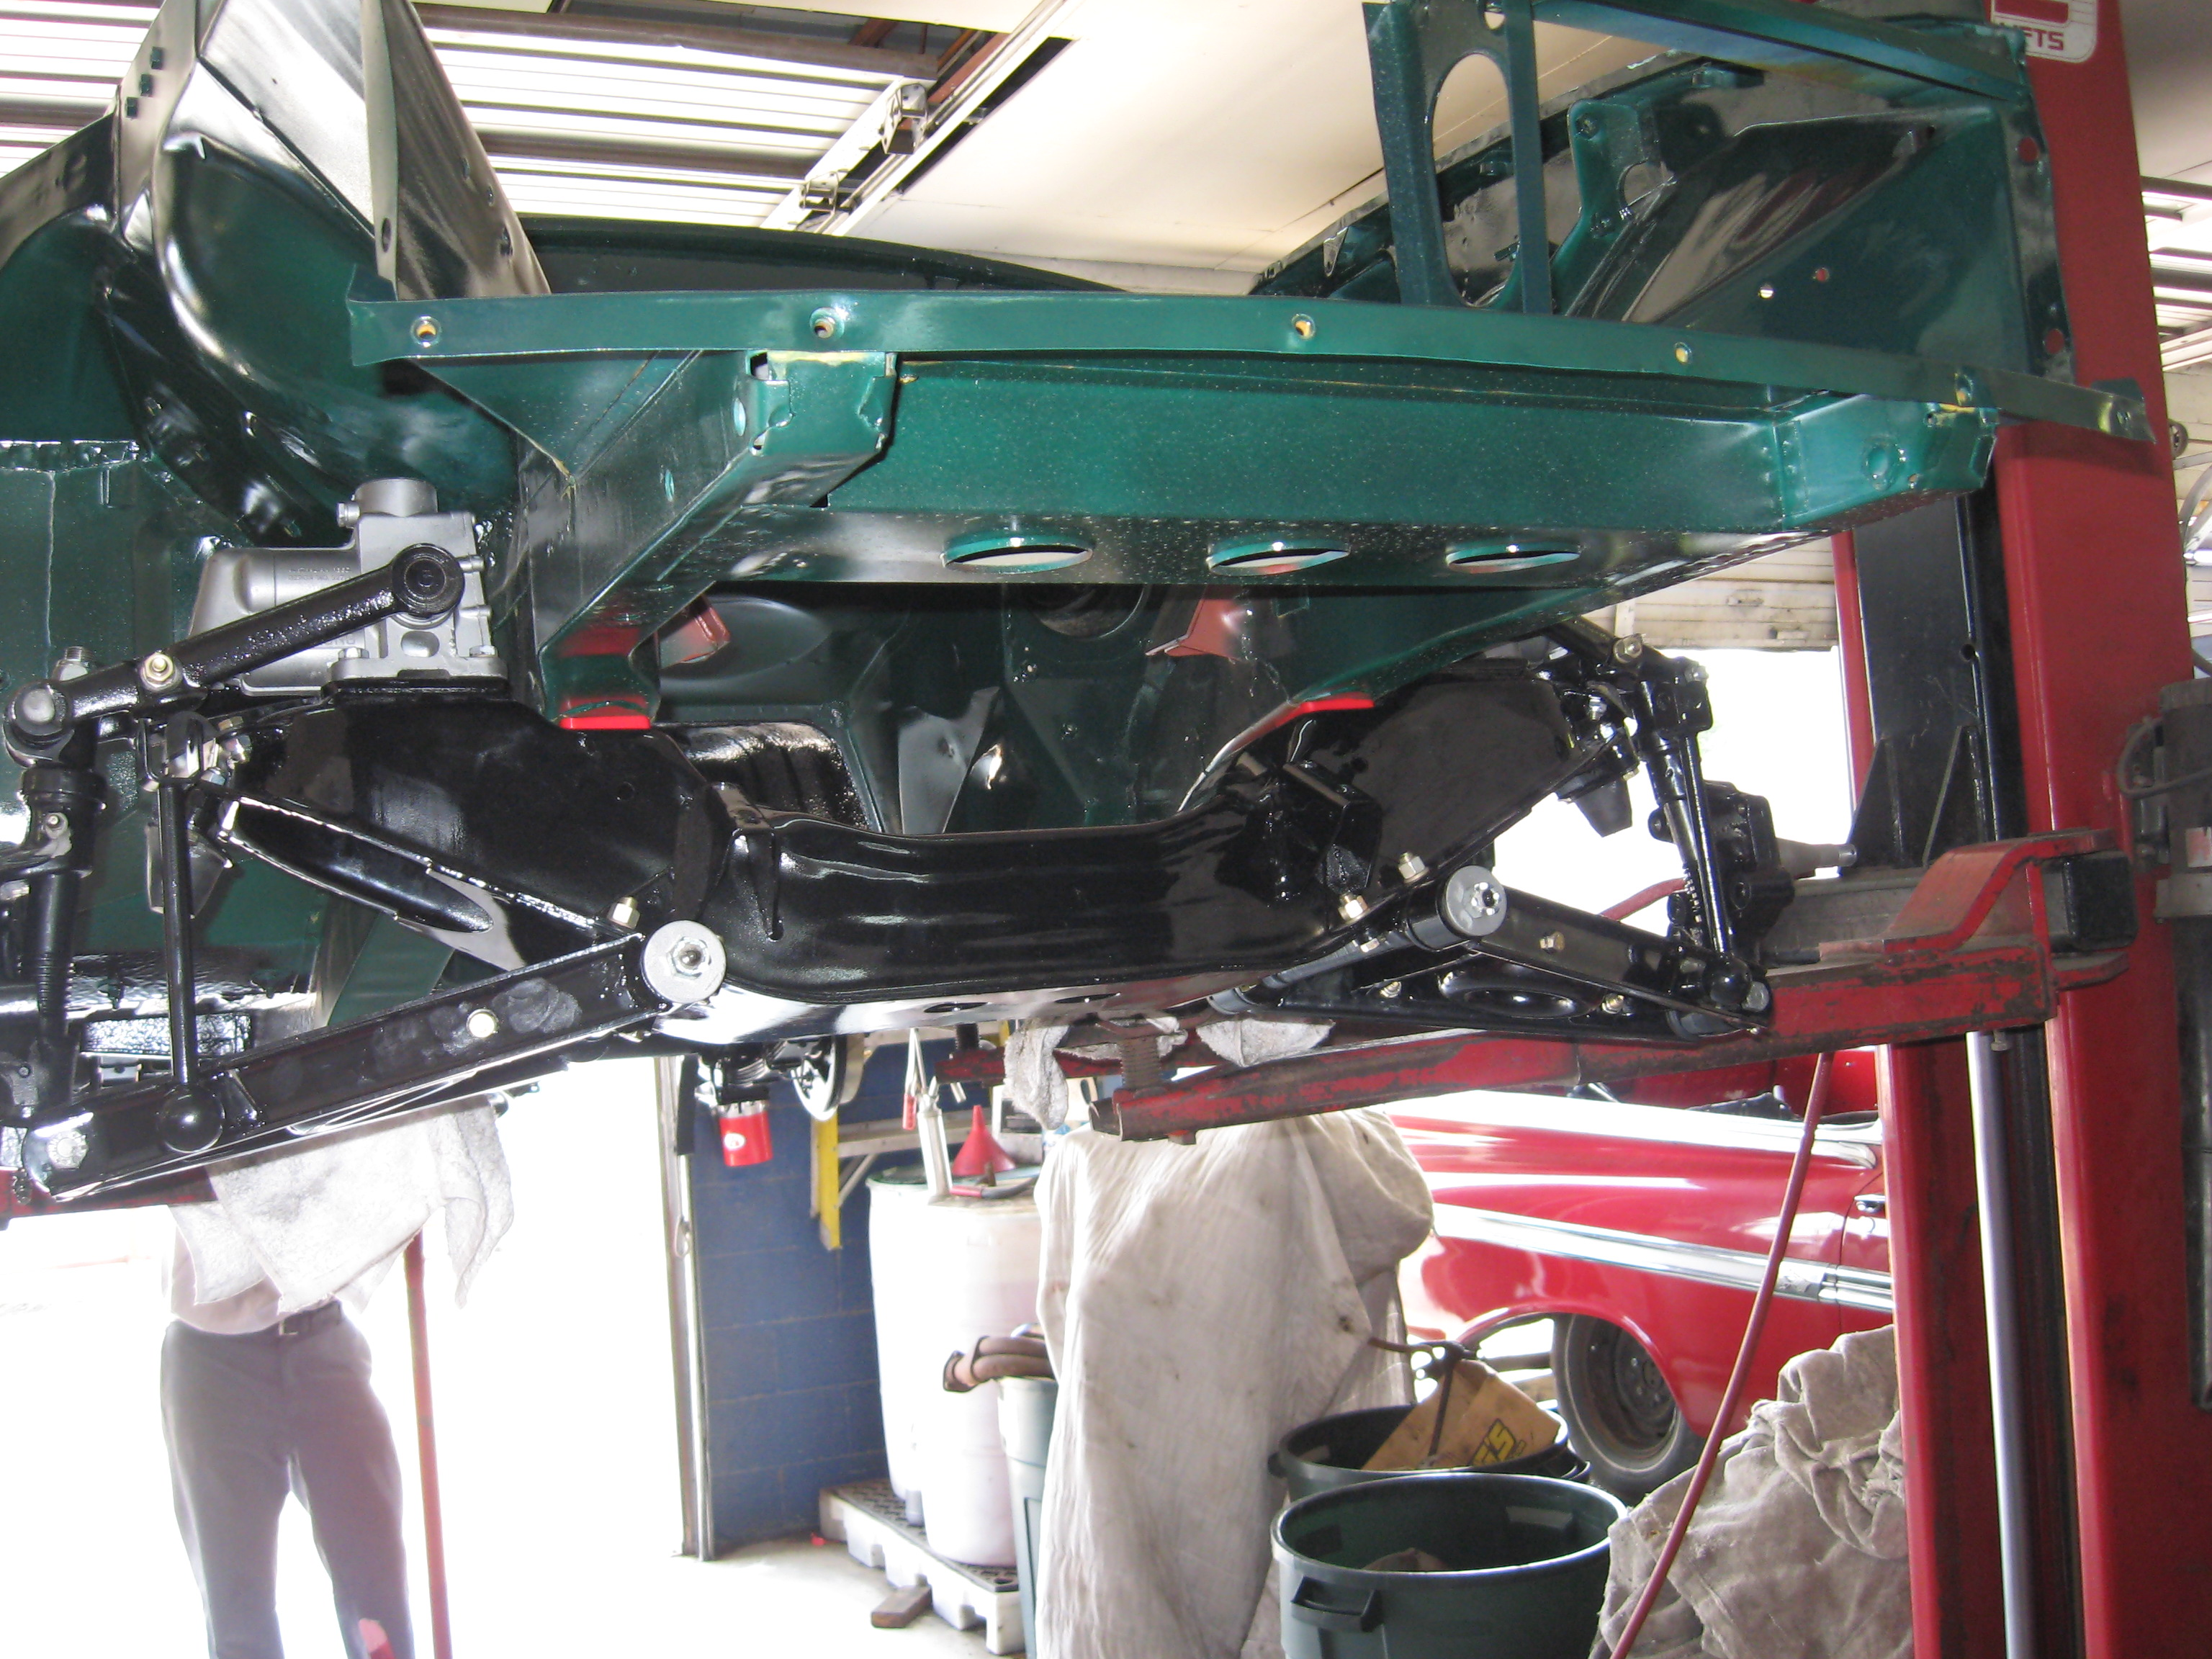 Restoring the MG - Wilson\'s Auto Restoration Blog - Wilson\'s Auto ...